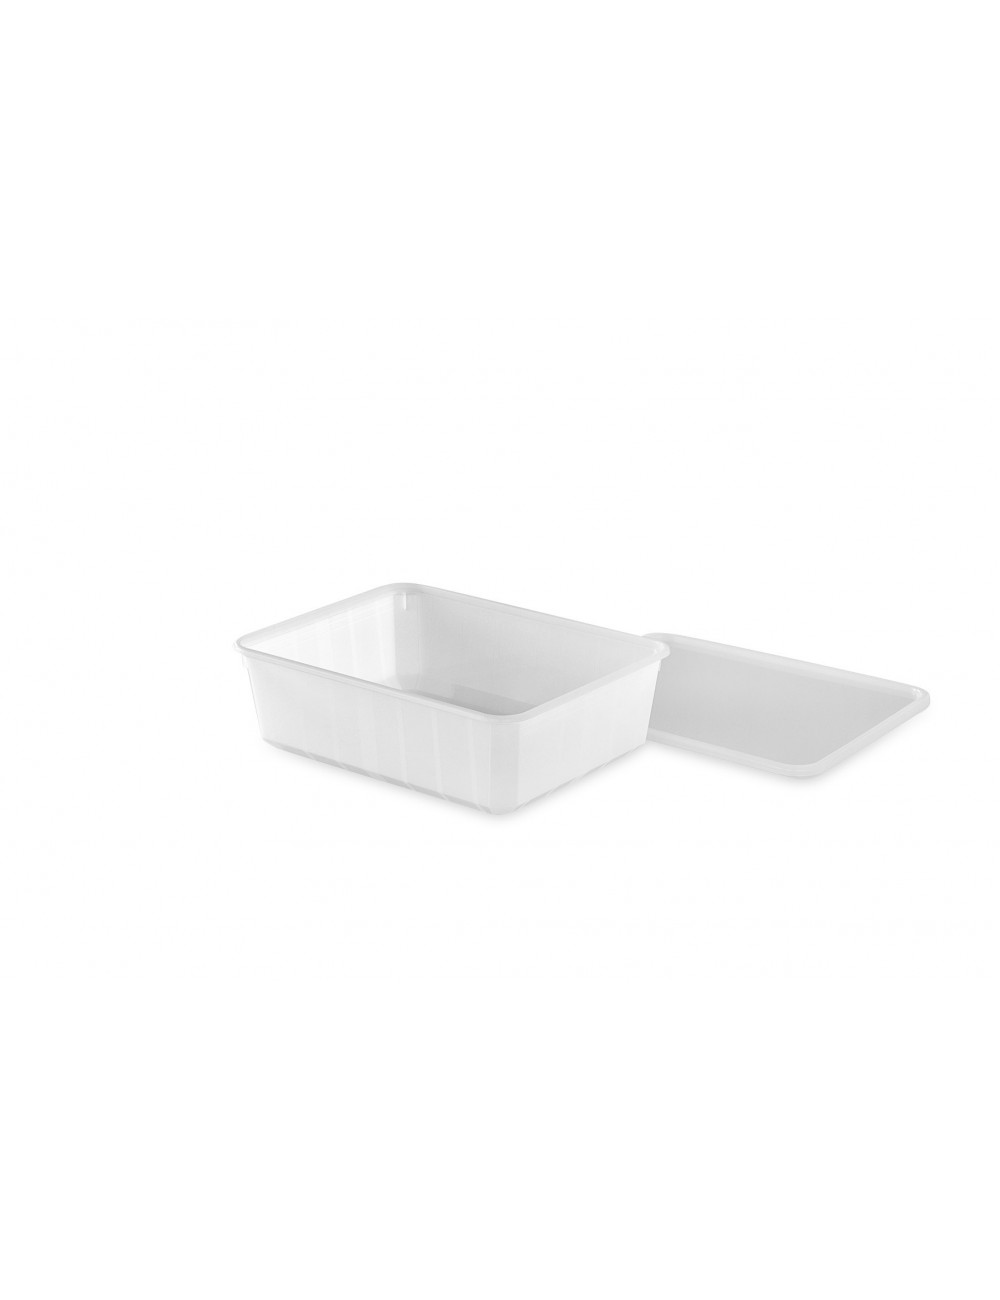 CARTY BOX - PLASTIC CONTAINER - 1100 mL